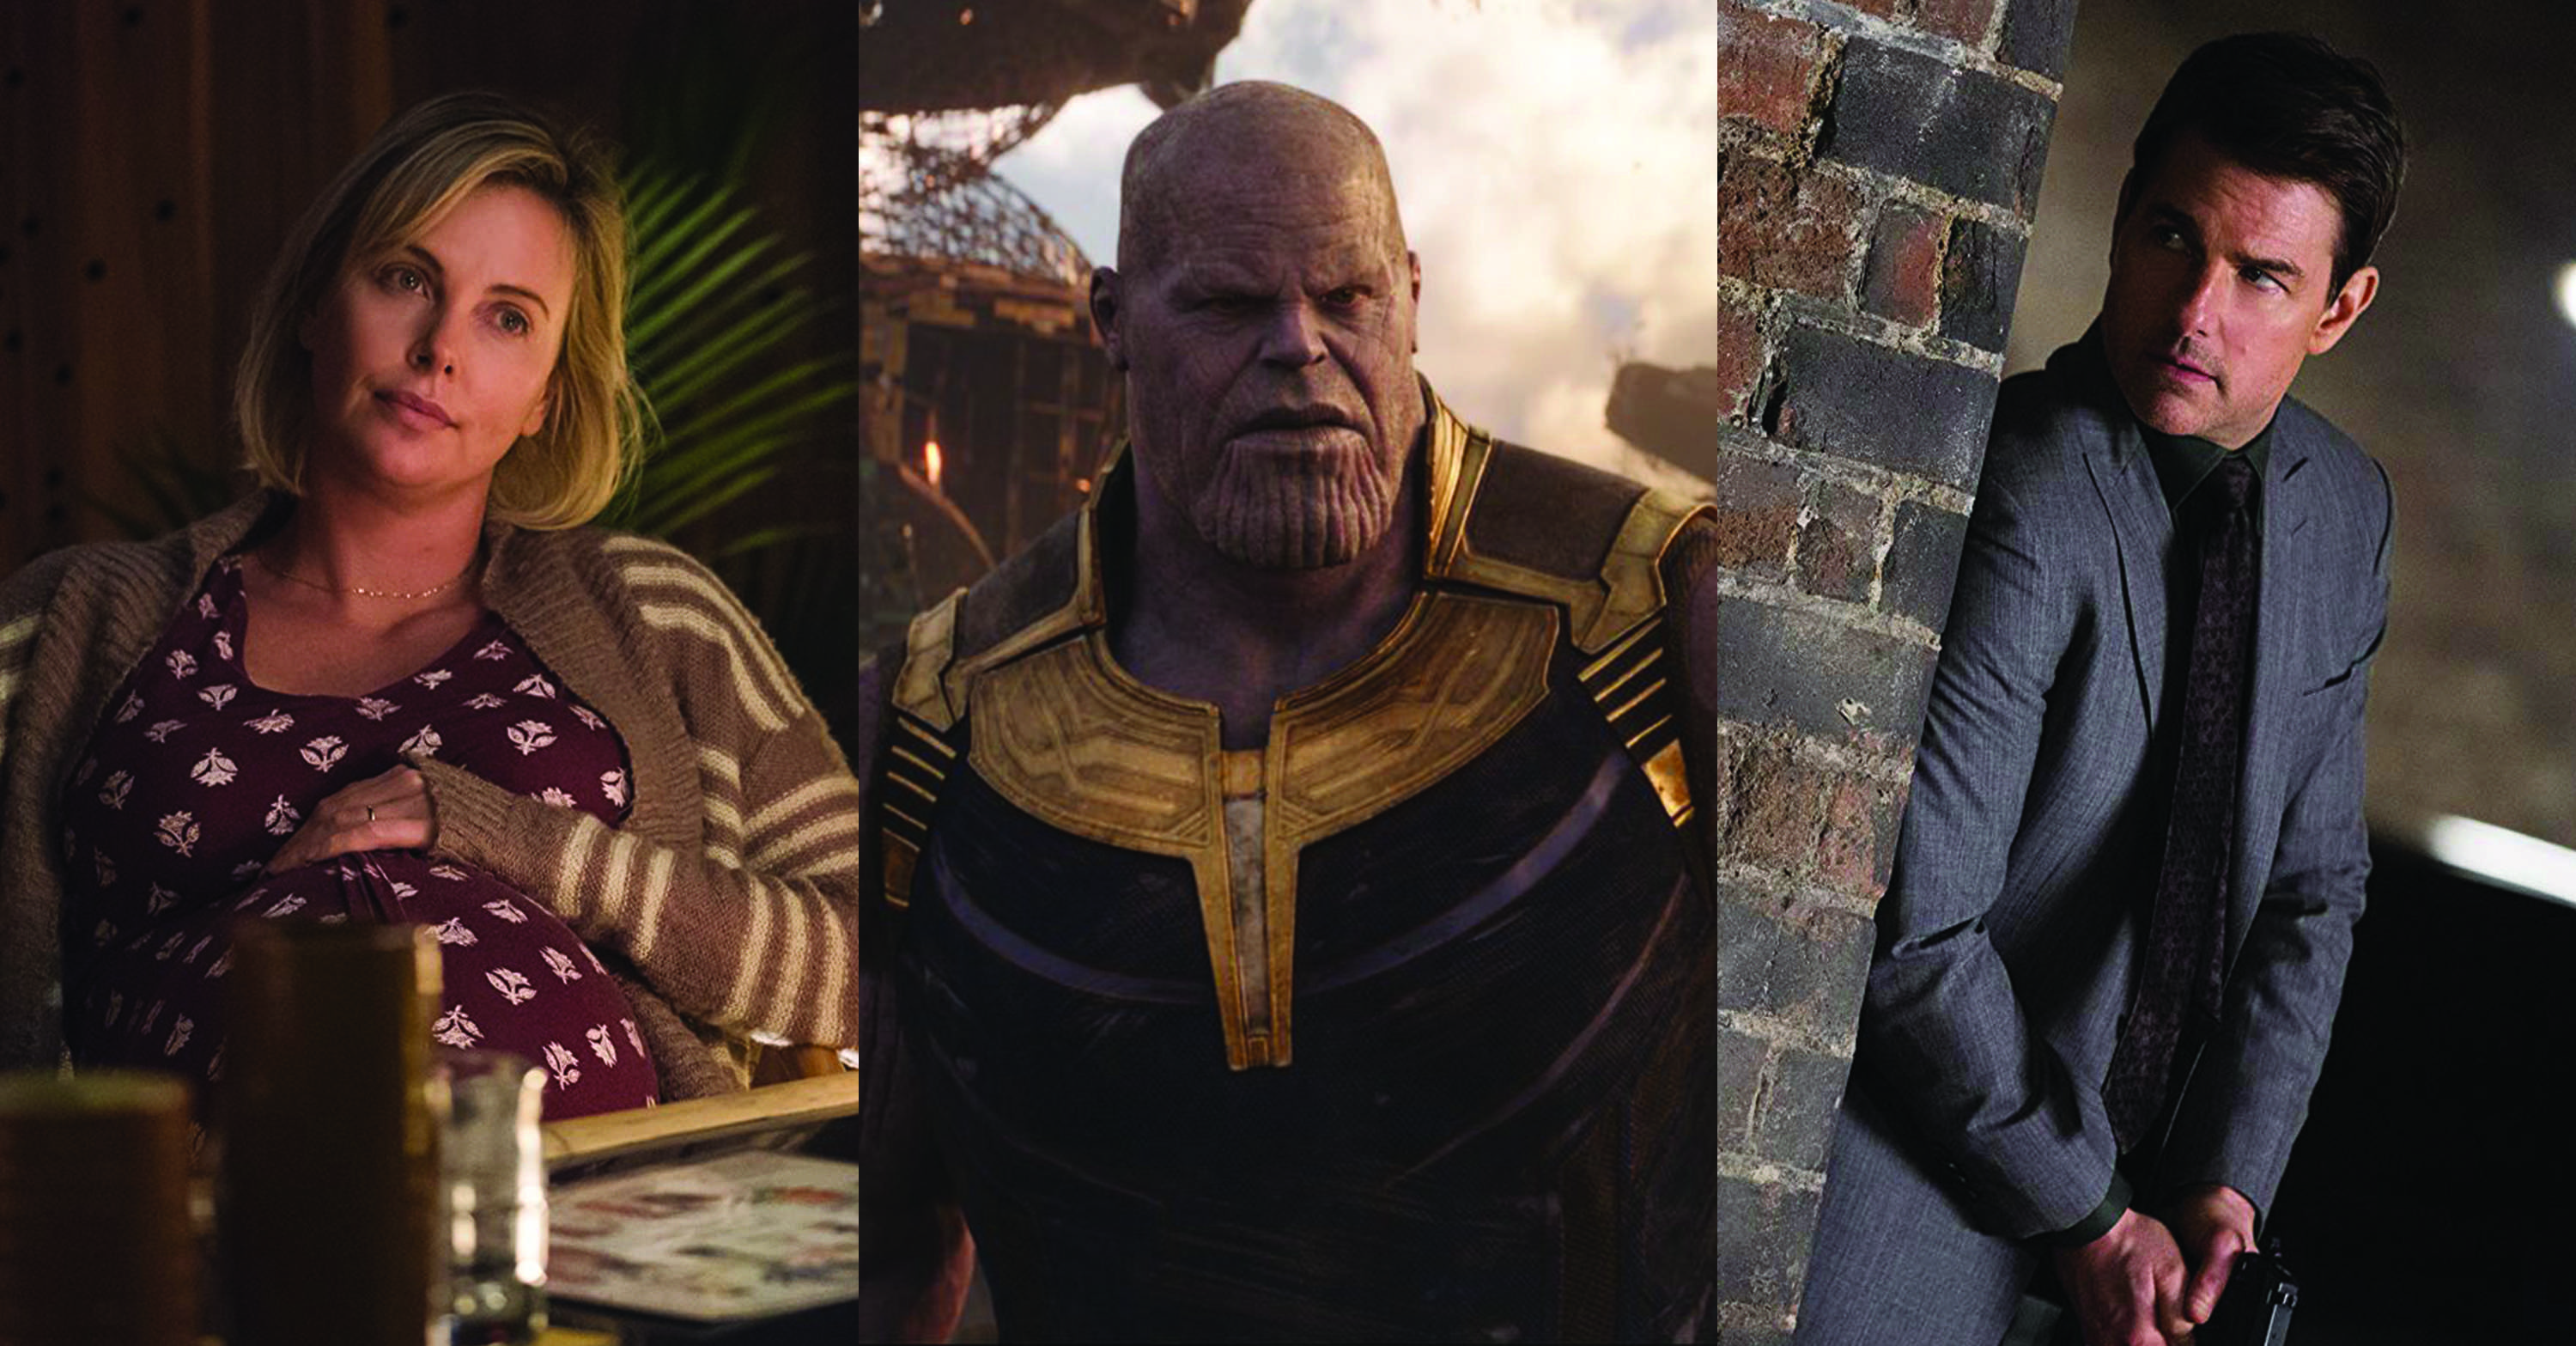 "COURTESY OF FOCUS, DISNEY, PARAMOUNT - Charlize Theron stars as a mother stretched to her limits in ""Tully."" (left) Josh Brolin portrays the mad titan, Thanos (middle), in the latest Marvel installment, the culmination of a decade of superhero films in ""Avengers: Infinity War."" Tom Cruise is back once again as Ethan Hunt, an agent for the Impossible Mission Force in ""M:I -Fallout."" (right)"